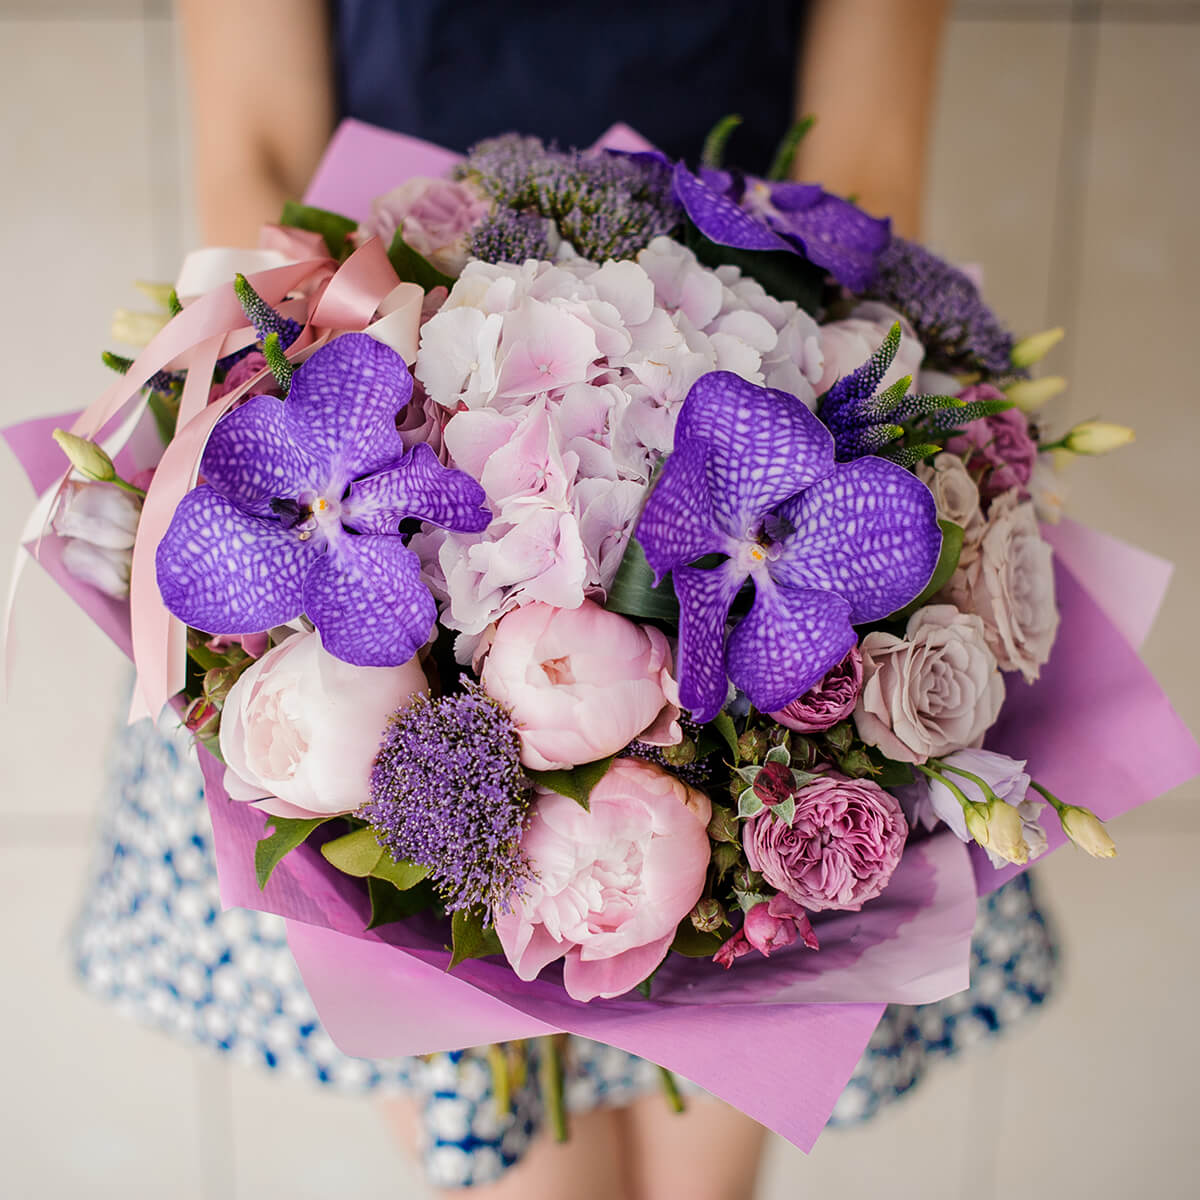 New York Flower Delivery | New York Blooms | Free, Same Day Delivery